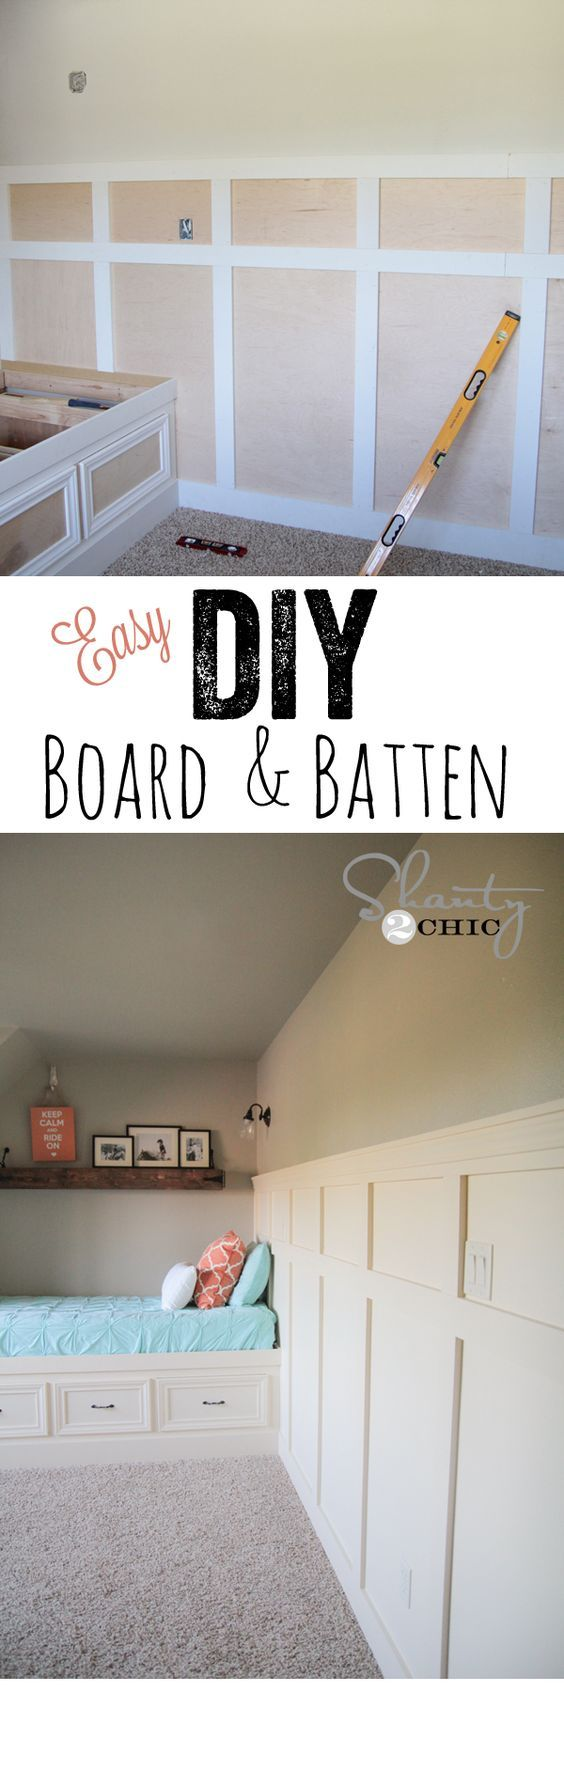 Filed under board and batten wainscoting diy diy projects - Diy Wall Paneling Board And Battenhouse